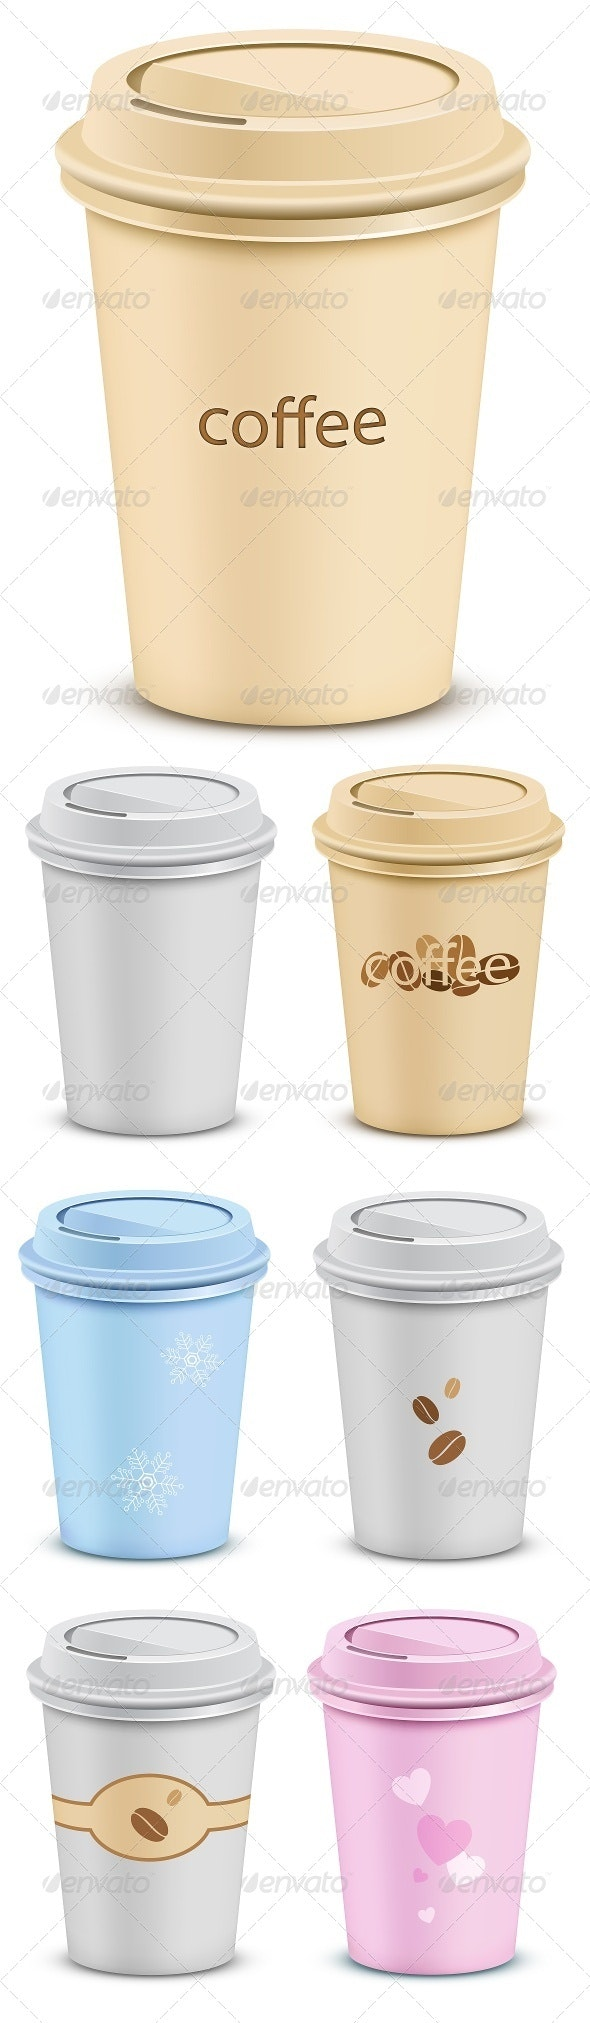 7 Plastic Coffee Cups - Food Objects